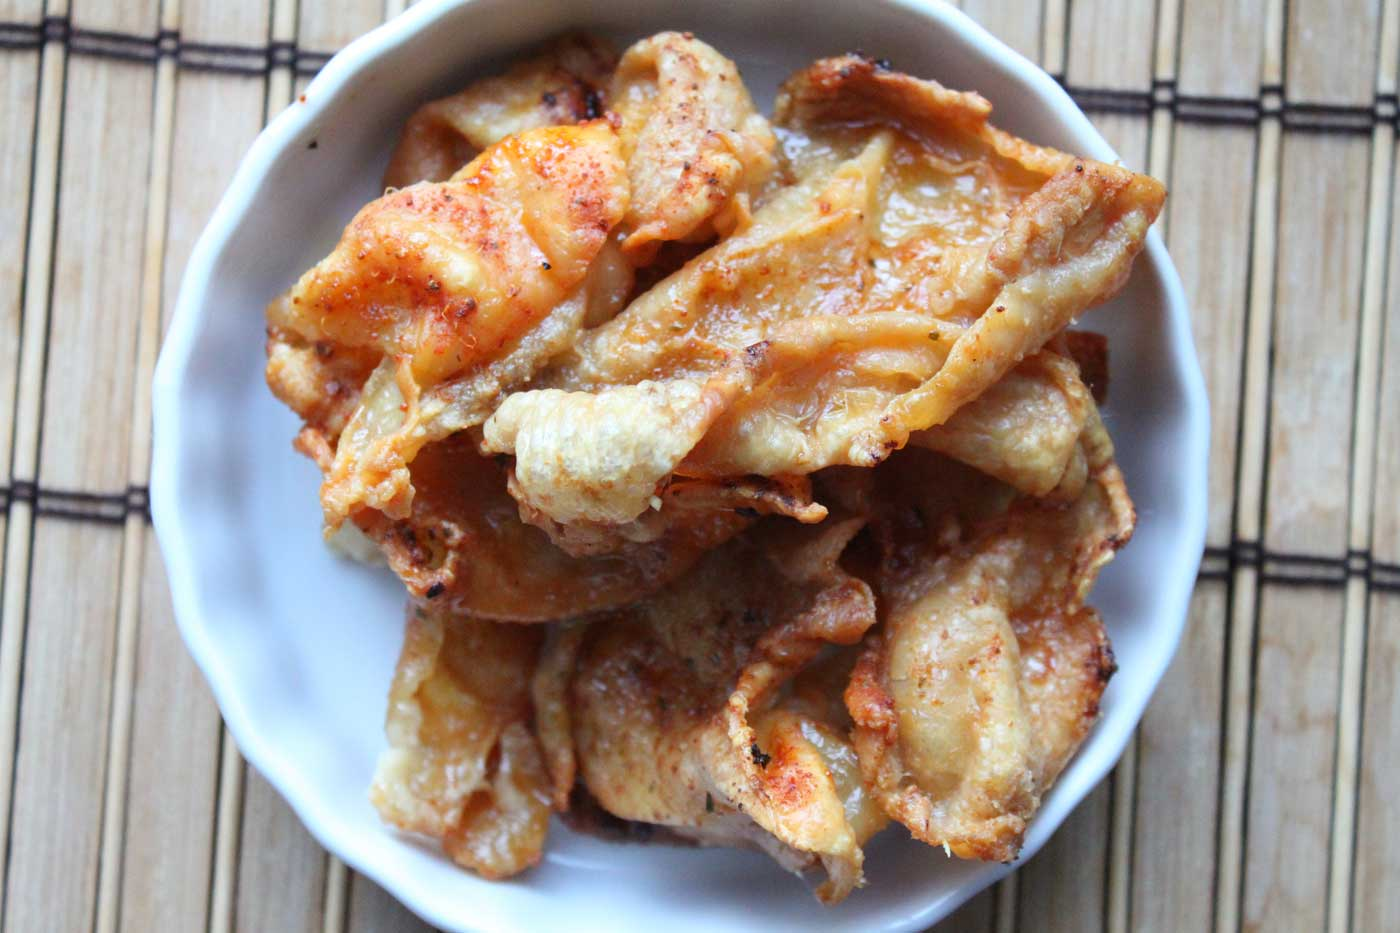 crispy baked chicken skin ndash simple comfort food recipes that are